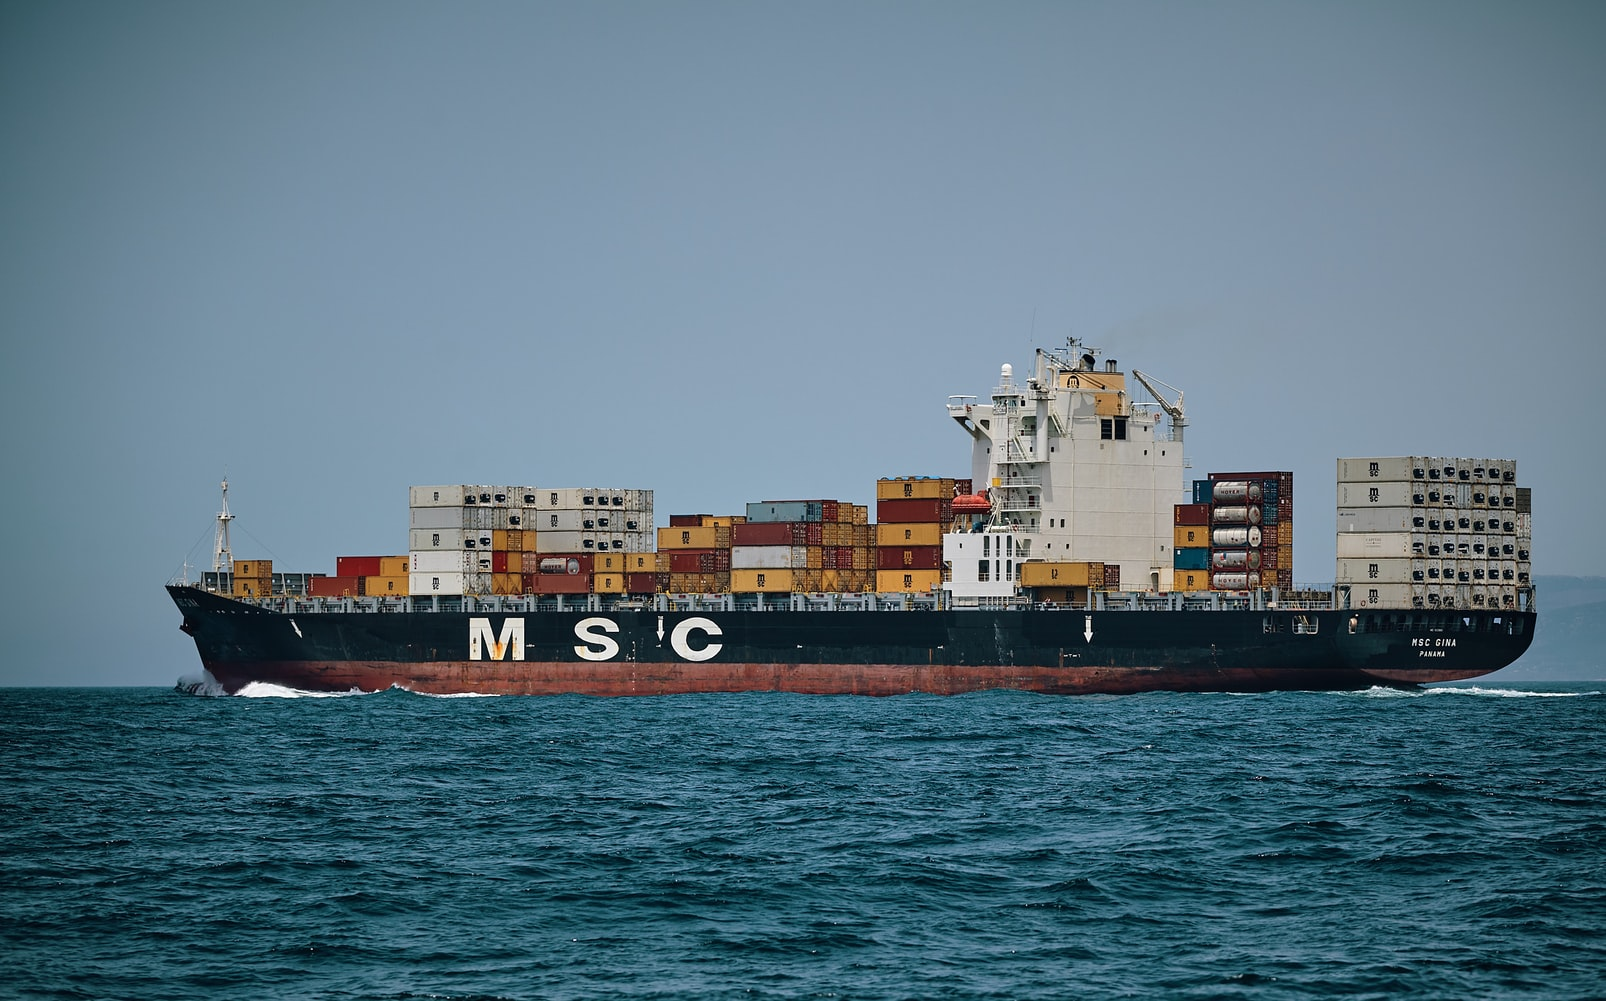 Ship carrying Containers